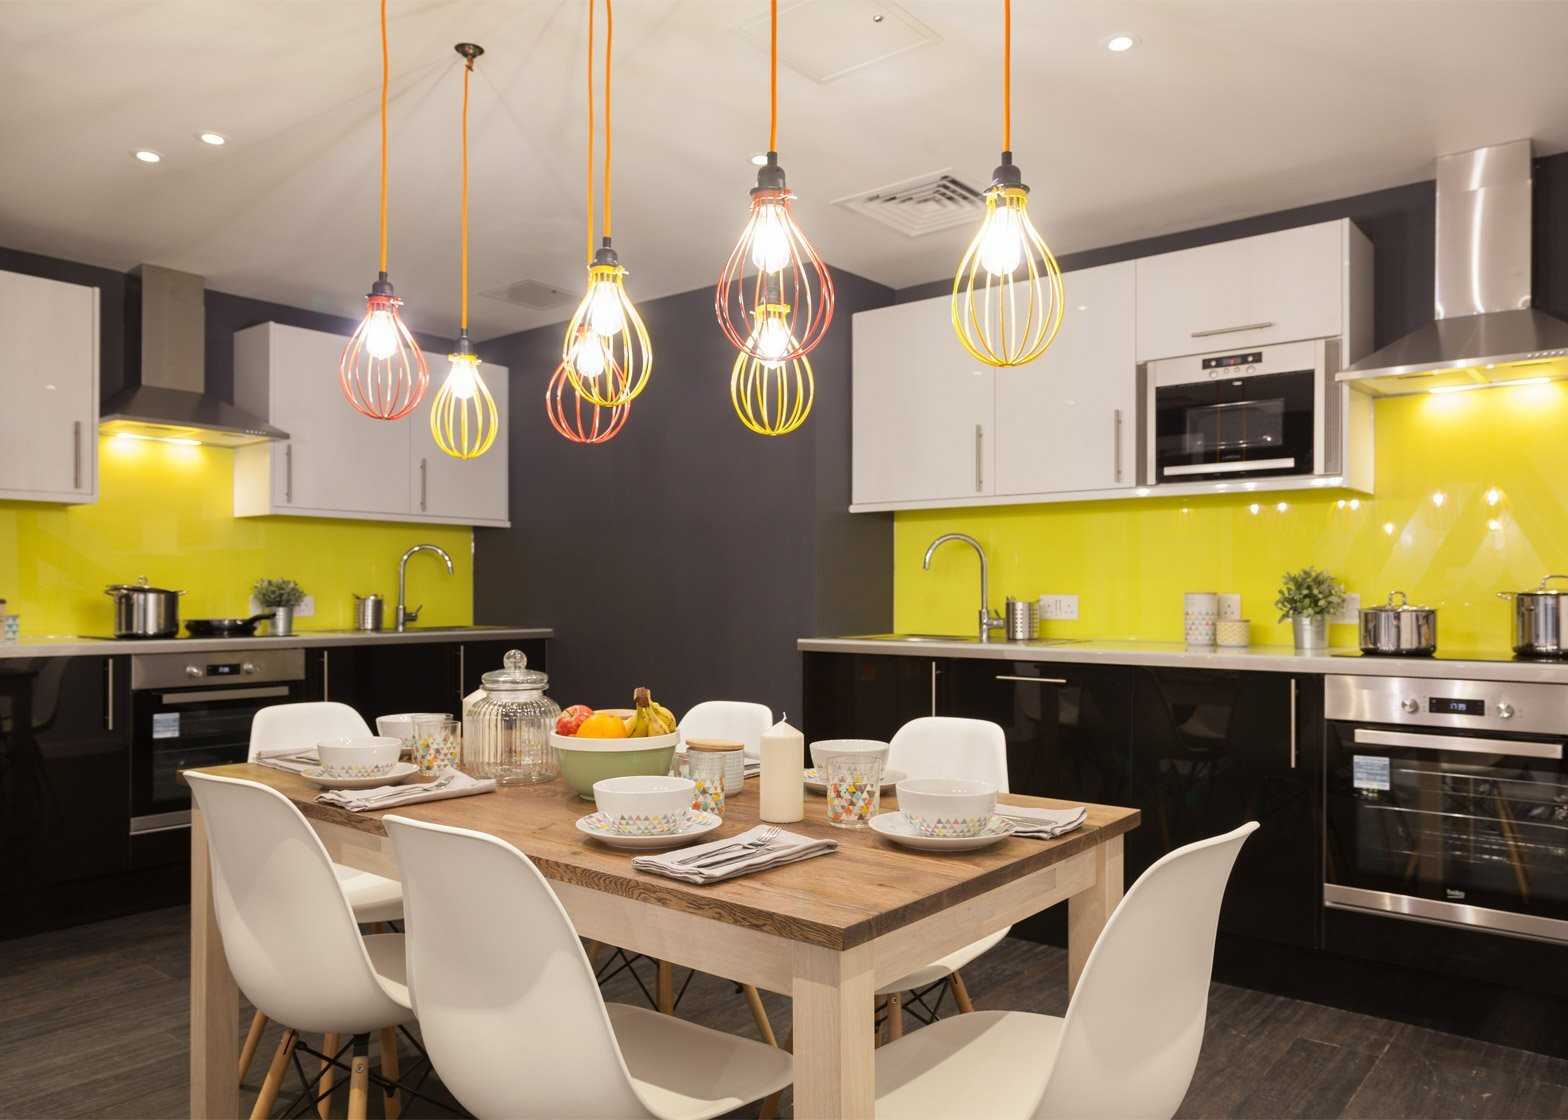 Shared Housing - The Collective Old Oak - London - Kitchen 2 - Humble Homes